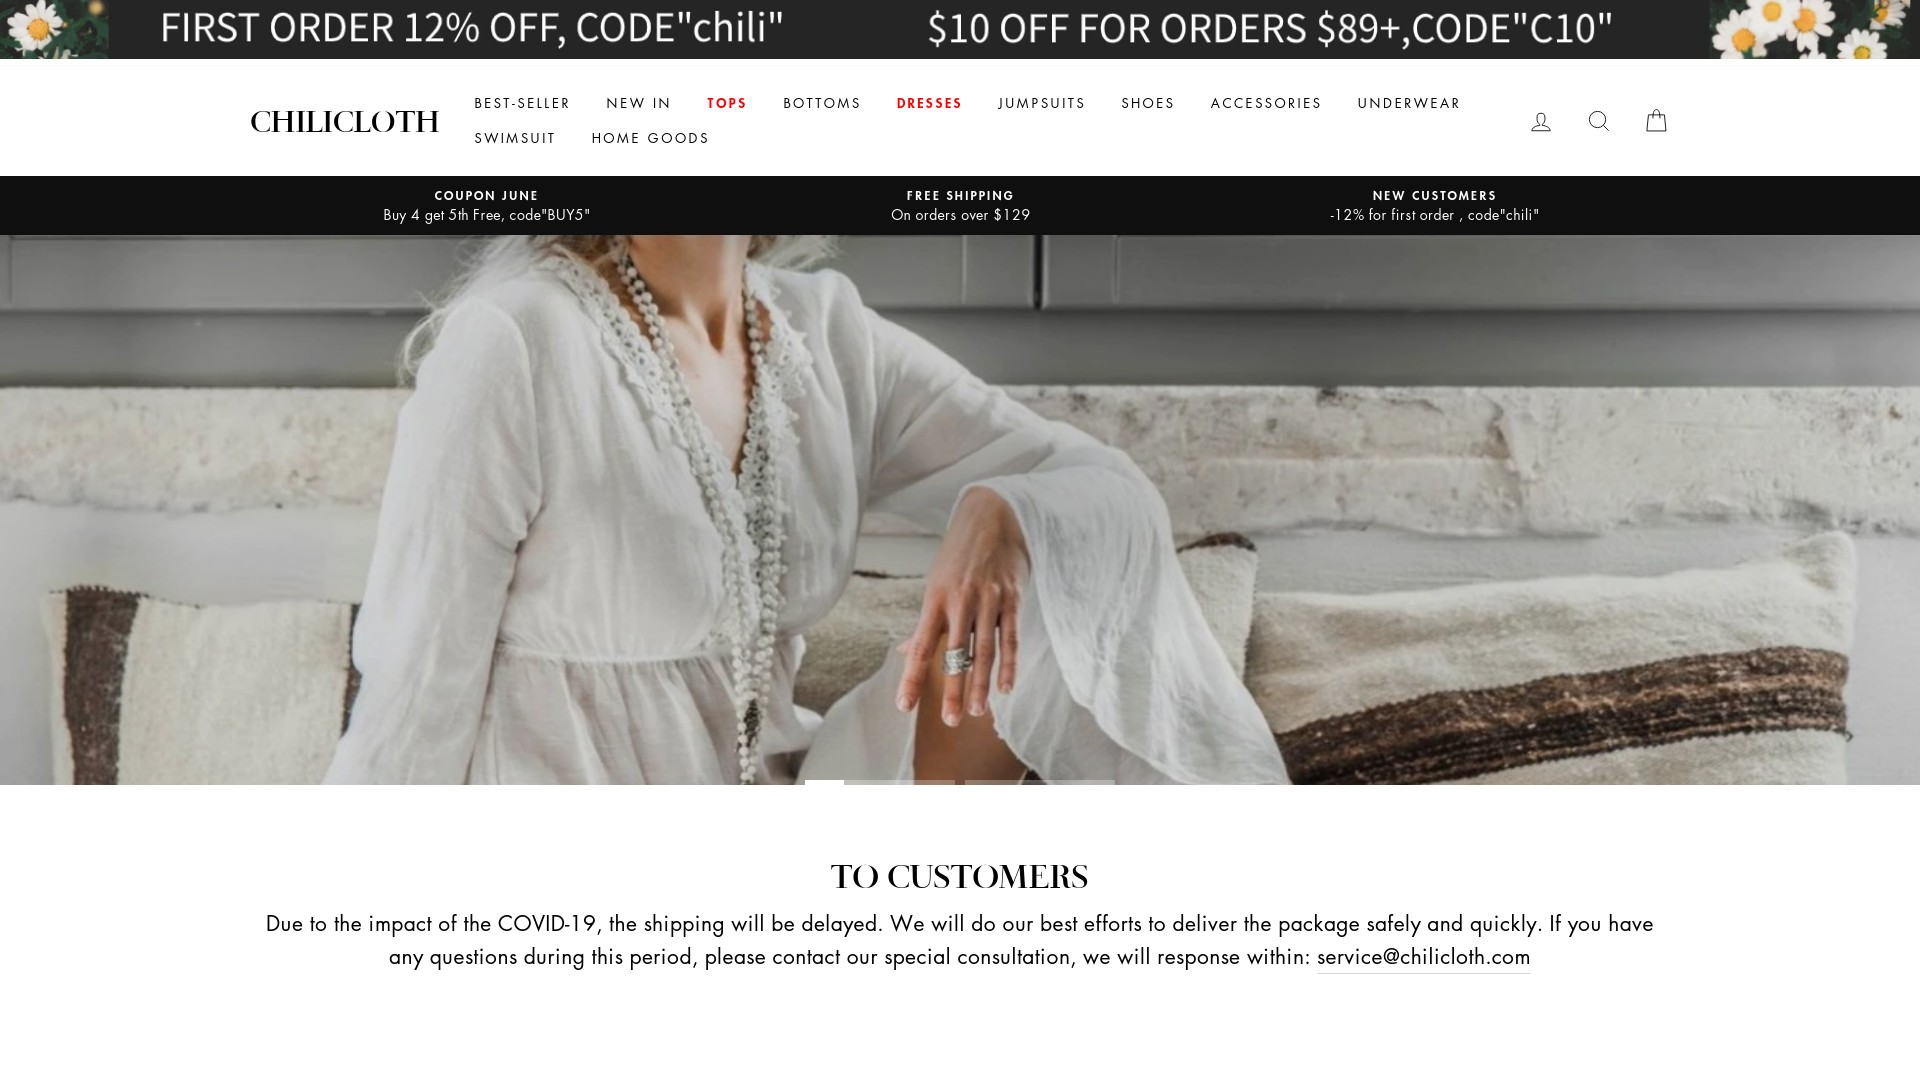 Is Chilicloth a Scam? Review of the Online Store